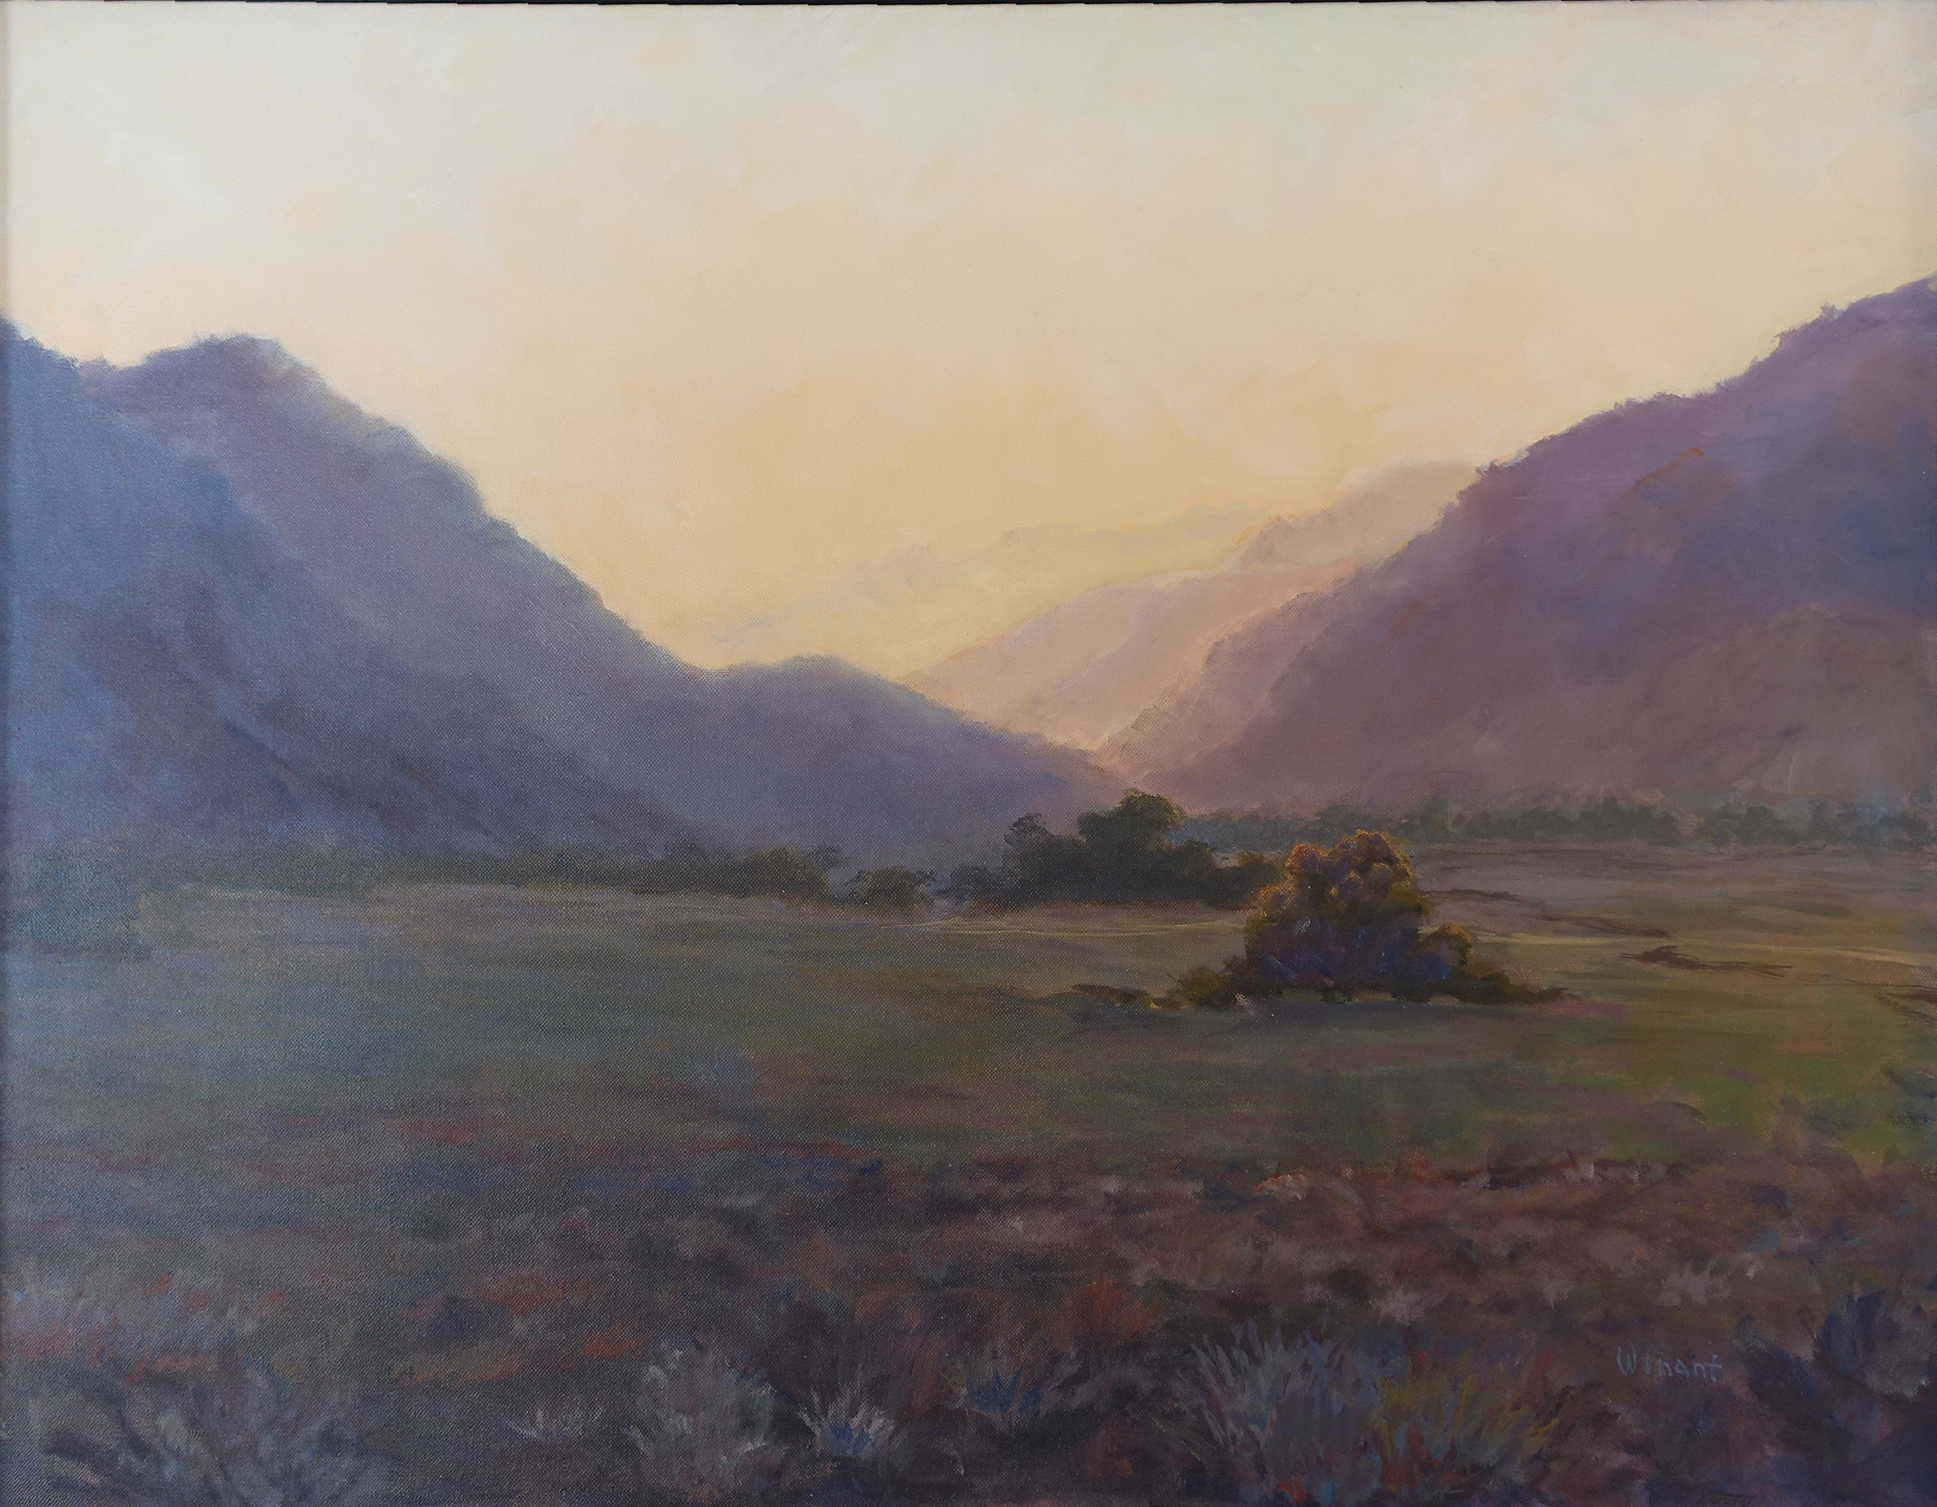 Kern Valley Sunset, 28 x 36 inches, SOLD